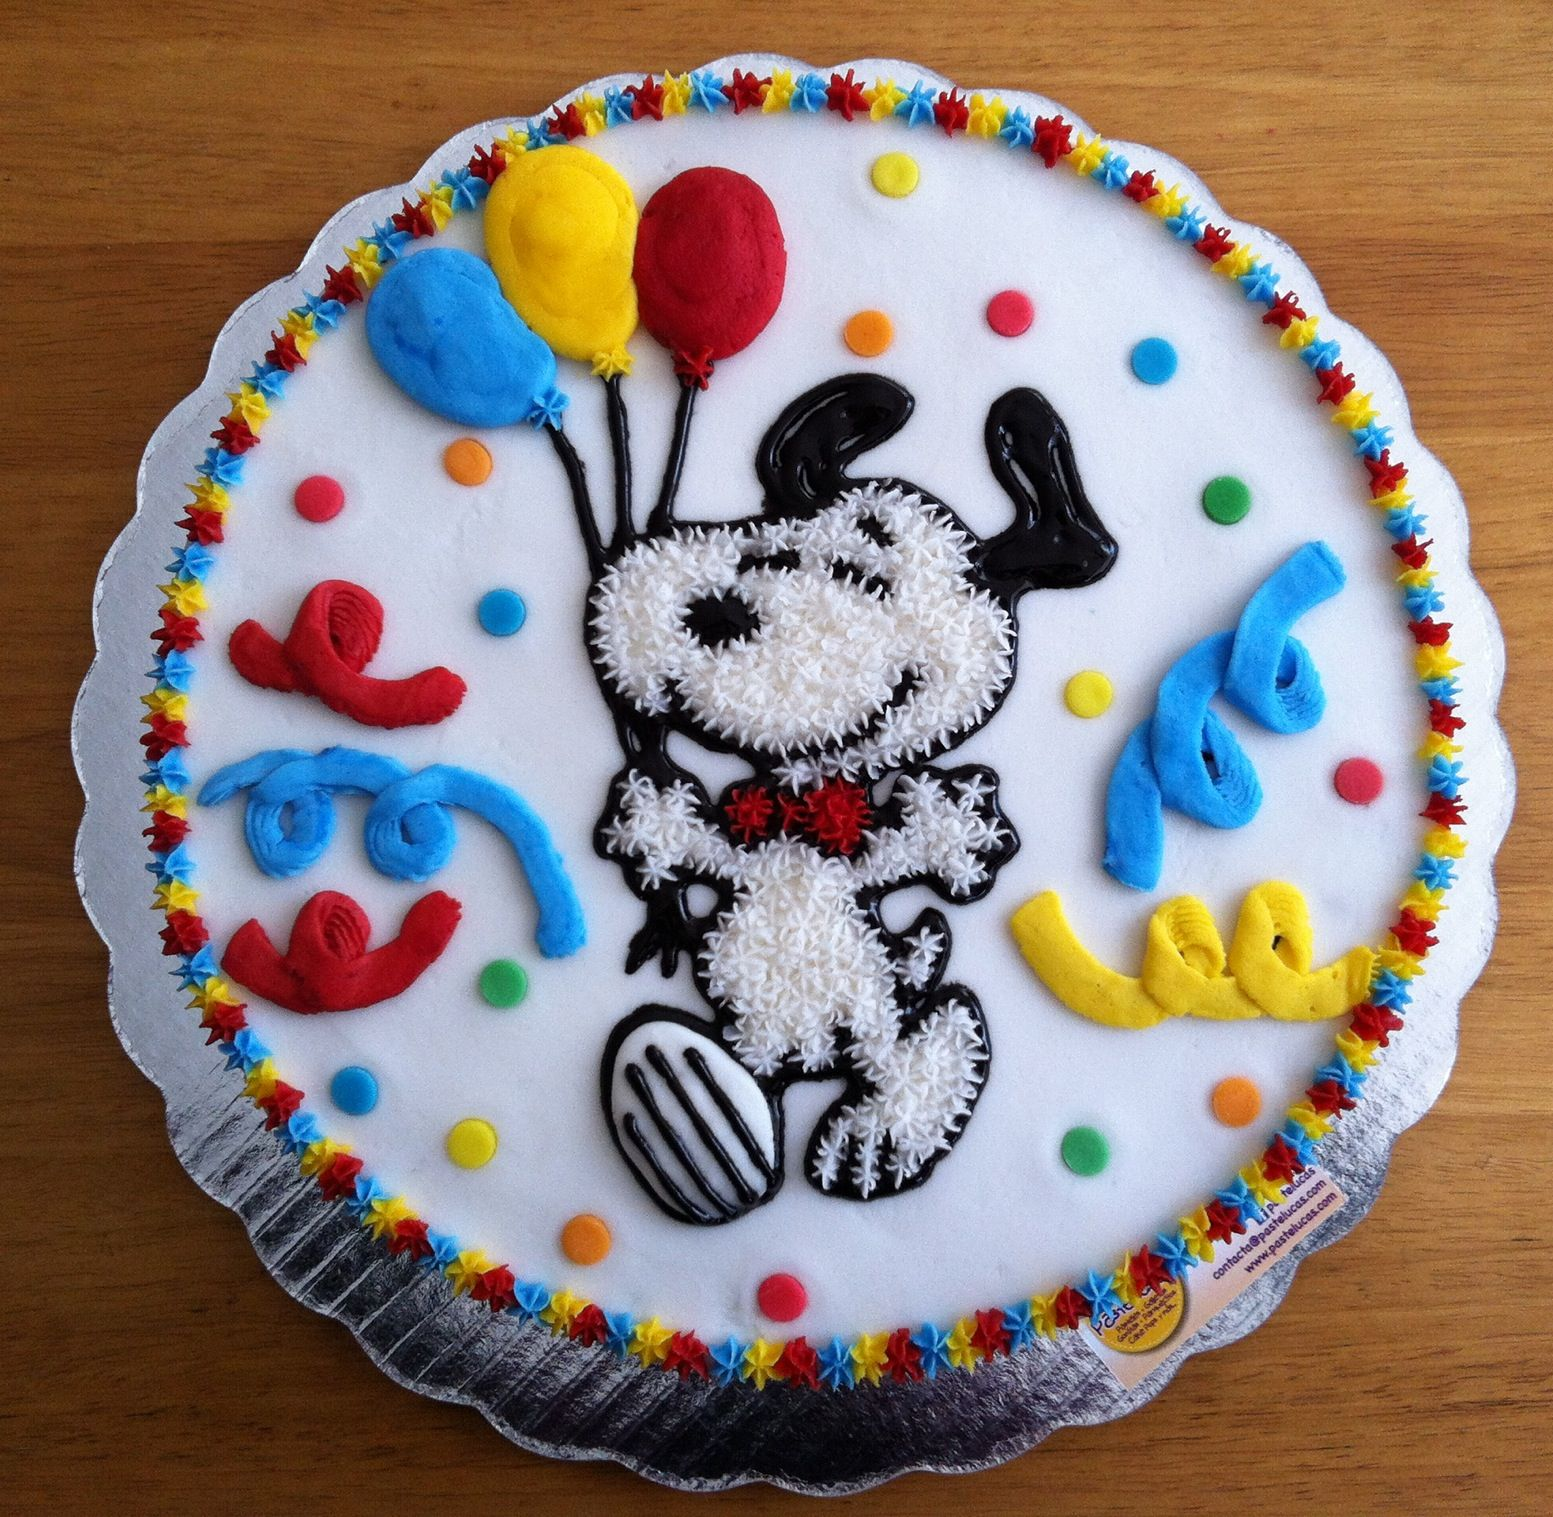 Snoopy Cake How Cute Is That Cake Designs In 2018 Pinterest